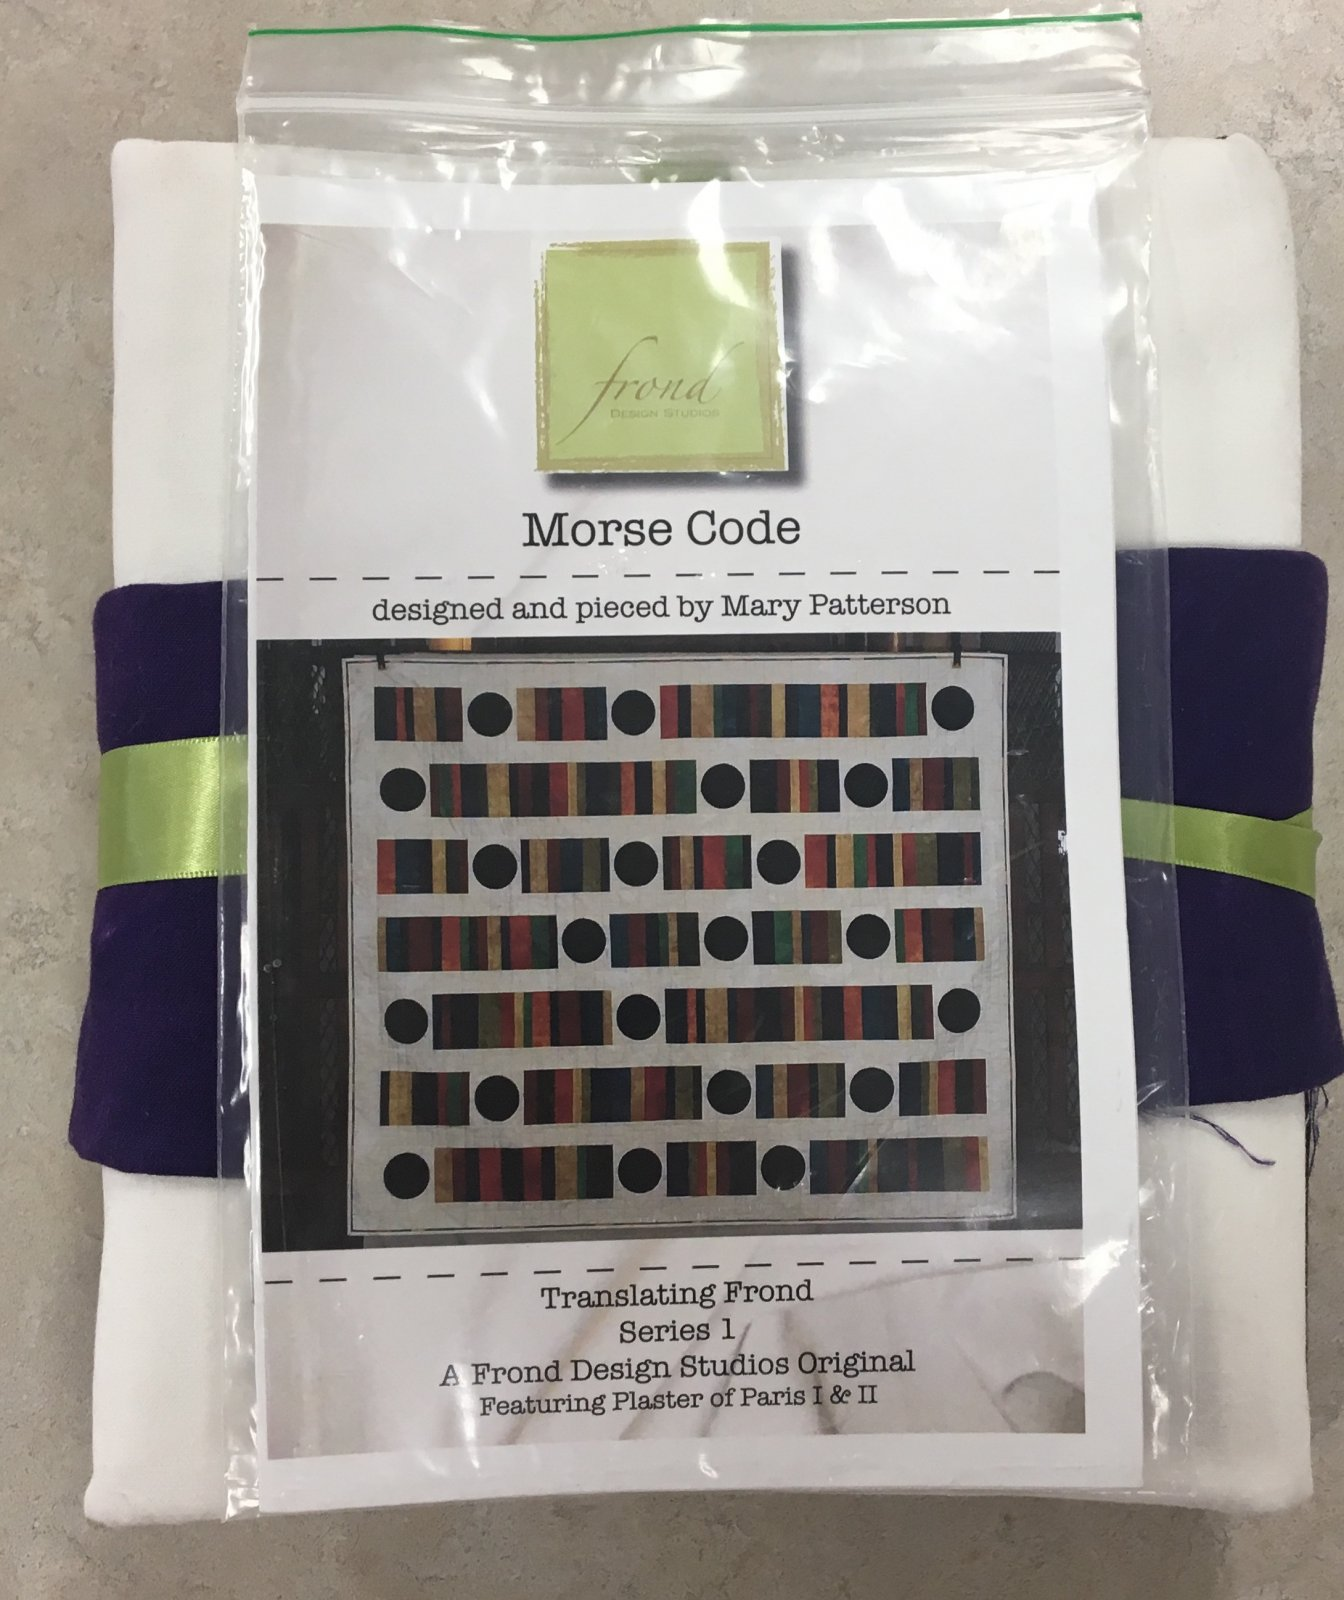 Morse Code Quilt Kit by Mary Patterson for Frond Design Studios